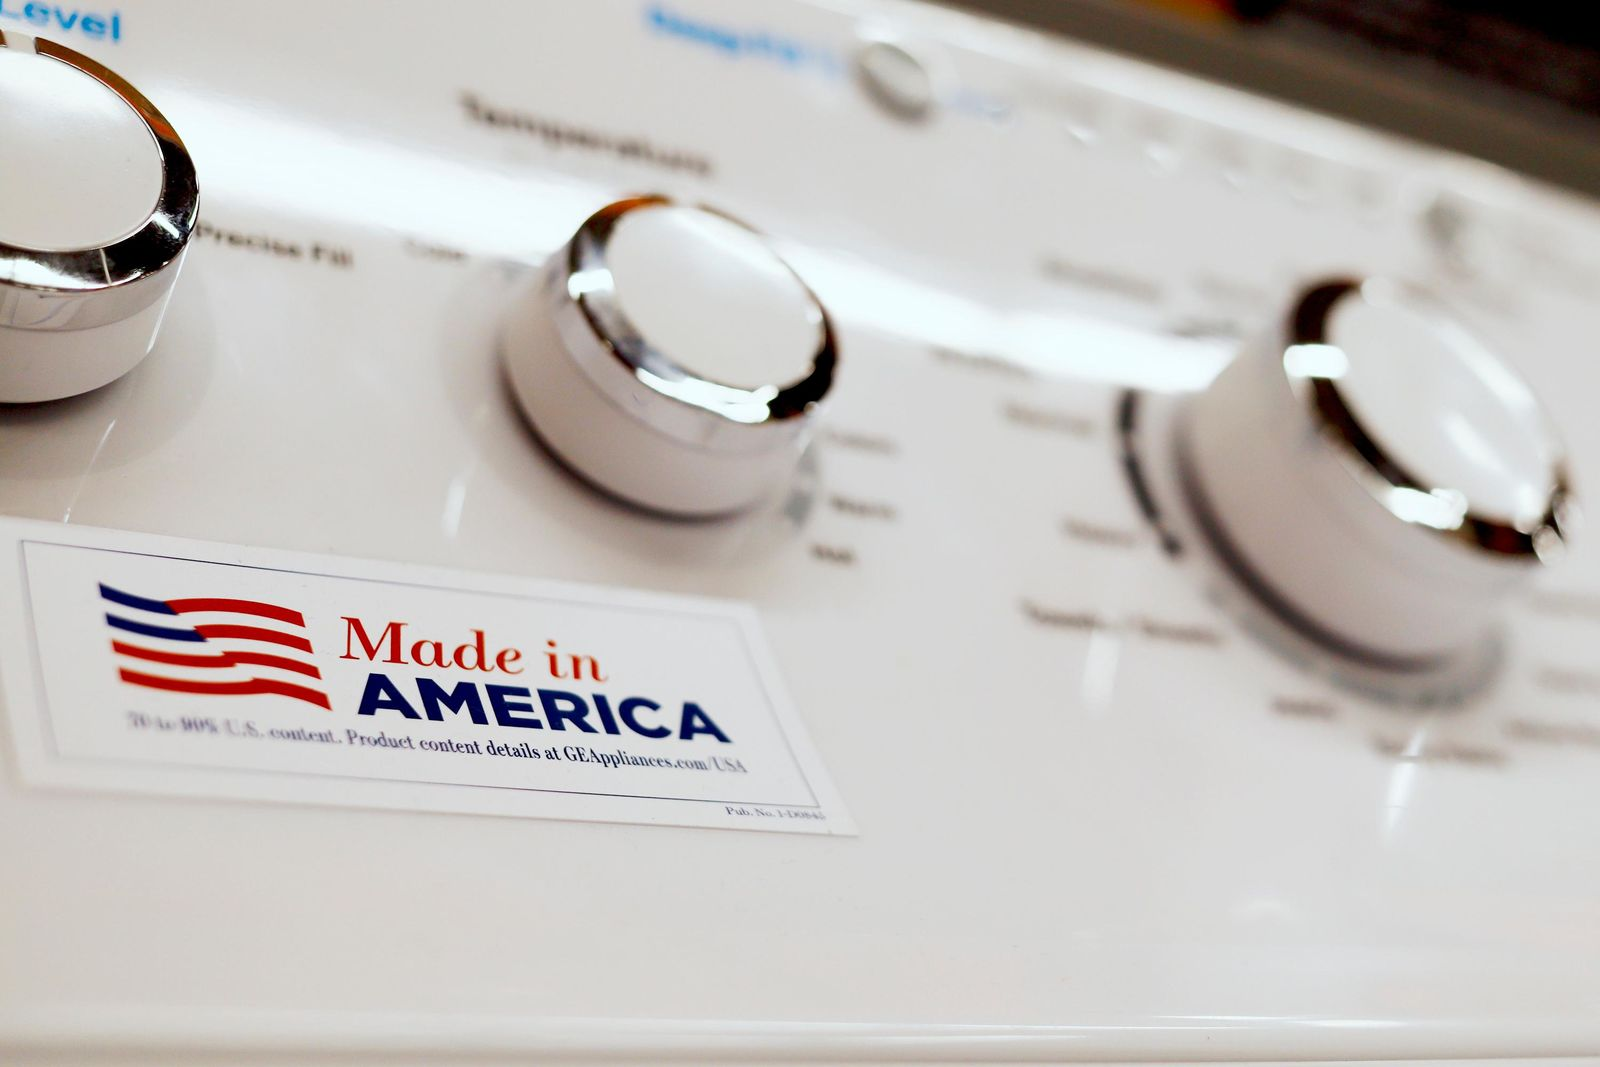 FILE - In this May 9, 2019, file photo a General Electric washing machine with a label advertising it was made in America is displayed in retail stores in Cranberry Township, Pa.(AP Photo/Keith Srakocic, File)